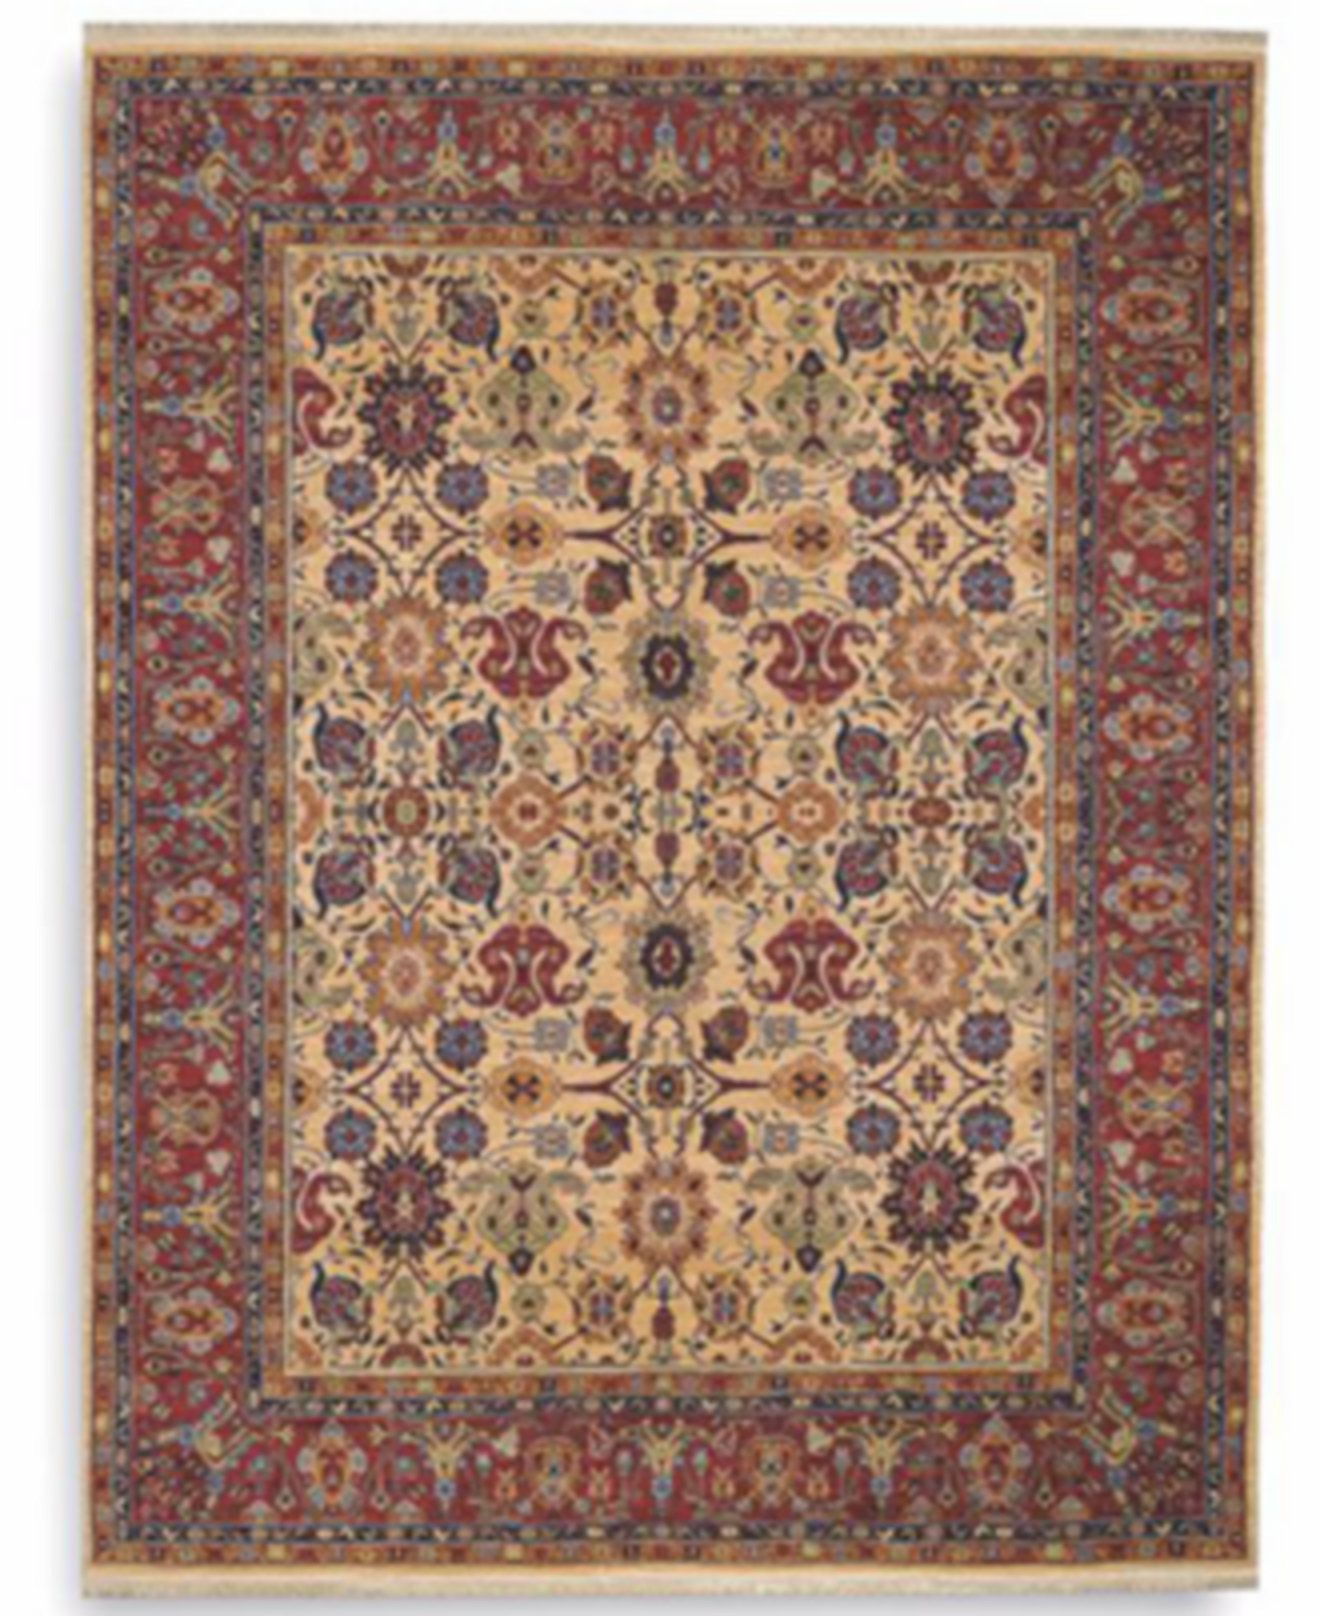 Karastan area rug english manor stratford 9 2 x 13 9